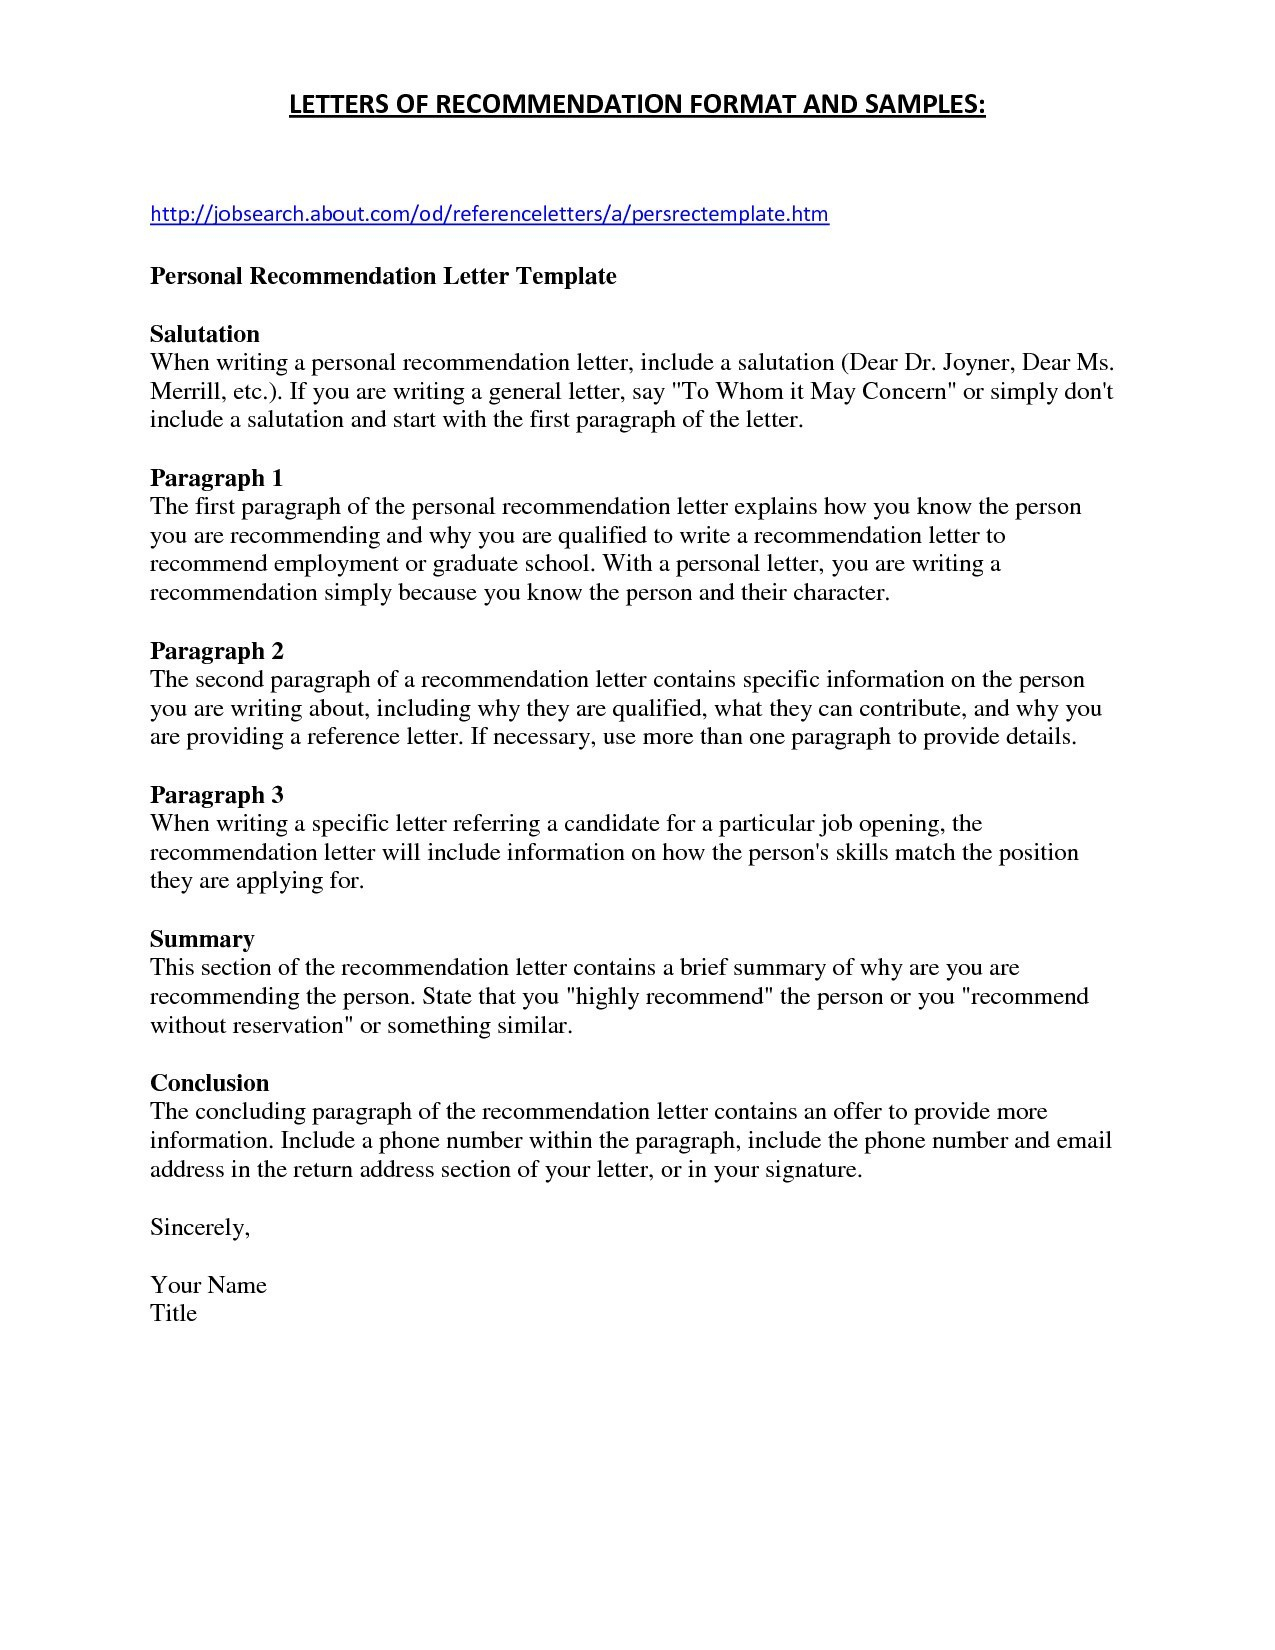 Er Nurse Responsibilities Resume - Emergency Room Doctor Job Description Valid Registered Nurse Job